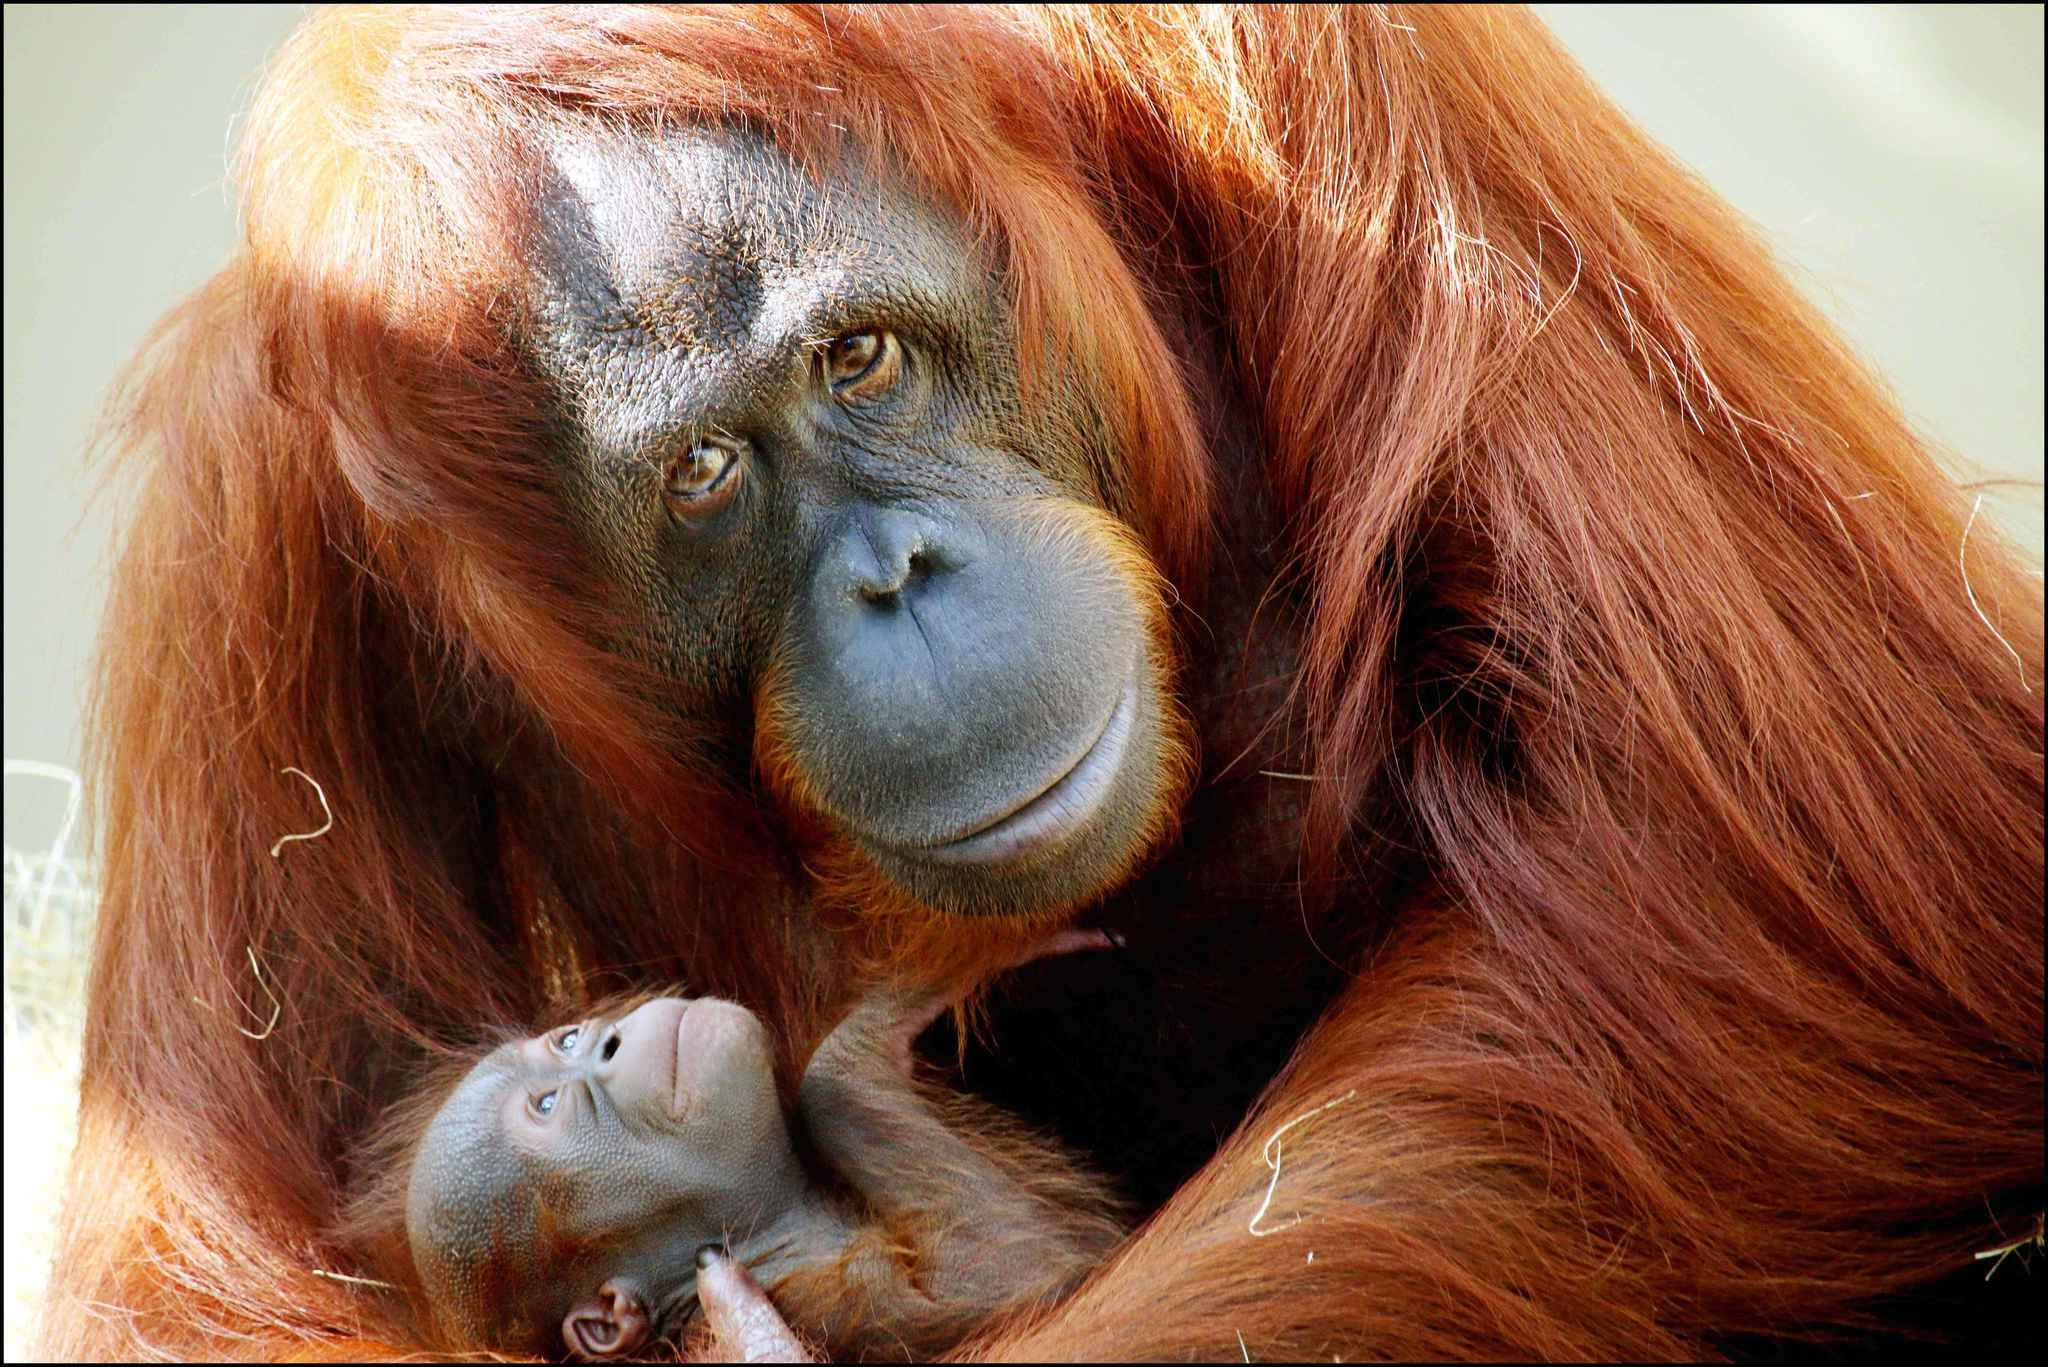 PIC FROM Caters News - (PICTURED: Mother Luna with her new born Bornean orangutan (a critically endangered species) at Busch Gardens in Florida  weighing in just around three pounds. PIC TAKEN ON 04/11/17) - Busch Gardens in Florida is excited to announce the newest addition to the park a baby orangutan, weighing in just around three pounds. Born to mother, Luna, and father, Madju, the baby is currently healthy and being cared for by its mother with the animal care team monitoring closely. Bornean orangutans are critically endangered and typically live in the trees in the tropical island rain forests from lowland swamps to high in the mountains of Borneo. Bornean orangutan populations have declined by more than 50% over the past 60 years, and the species habitat has been reduced by at least 55% over the past 20 years. The species is threatened by rapid deforestation and devastation of their habitat, mainly due to palm and other agricultural plantations. Young orangutans, in particular, are also by the illegal pet trade and mothers often killed as poachers snatch their young. Guests can see the baby starting next week in the Jungala area of the park and help name the male via a Facebook poll launching Thursday 16th November. COPY ENDS - Caters News